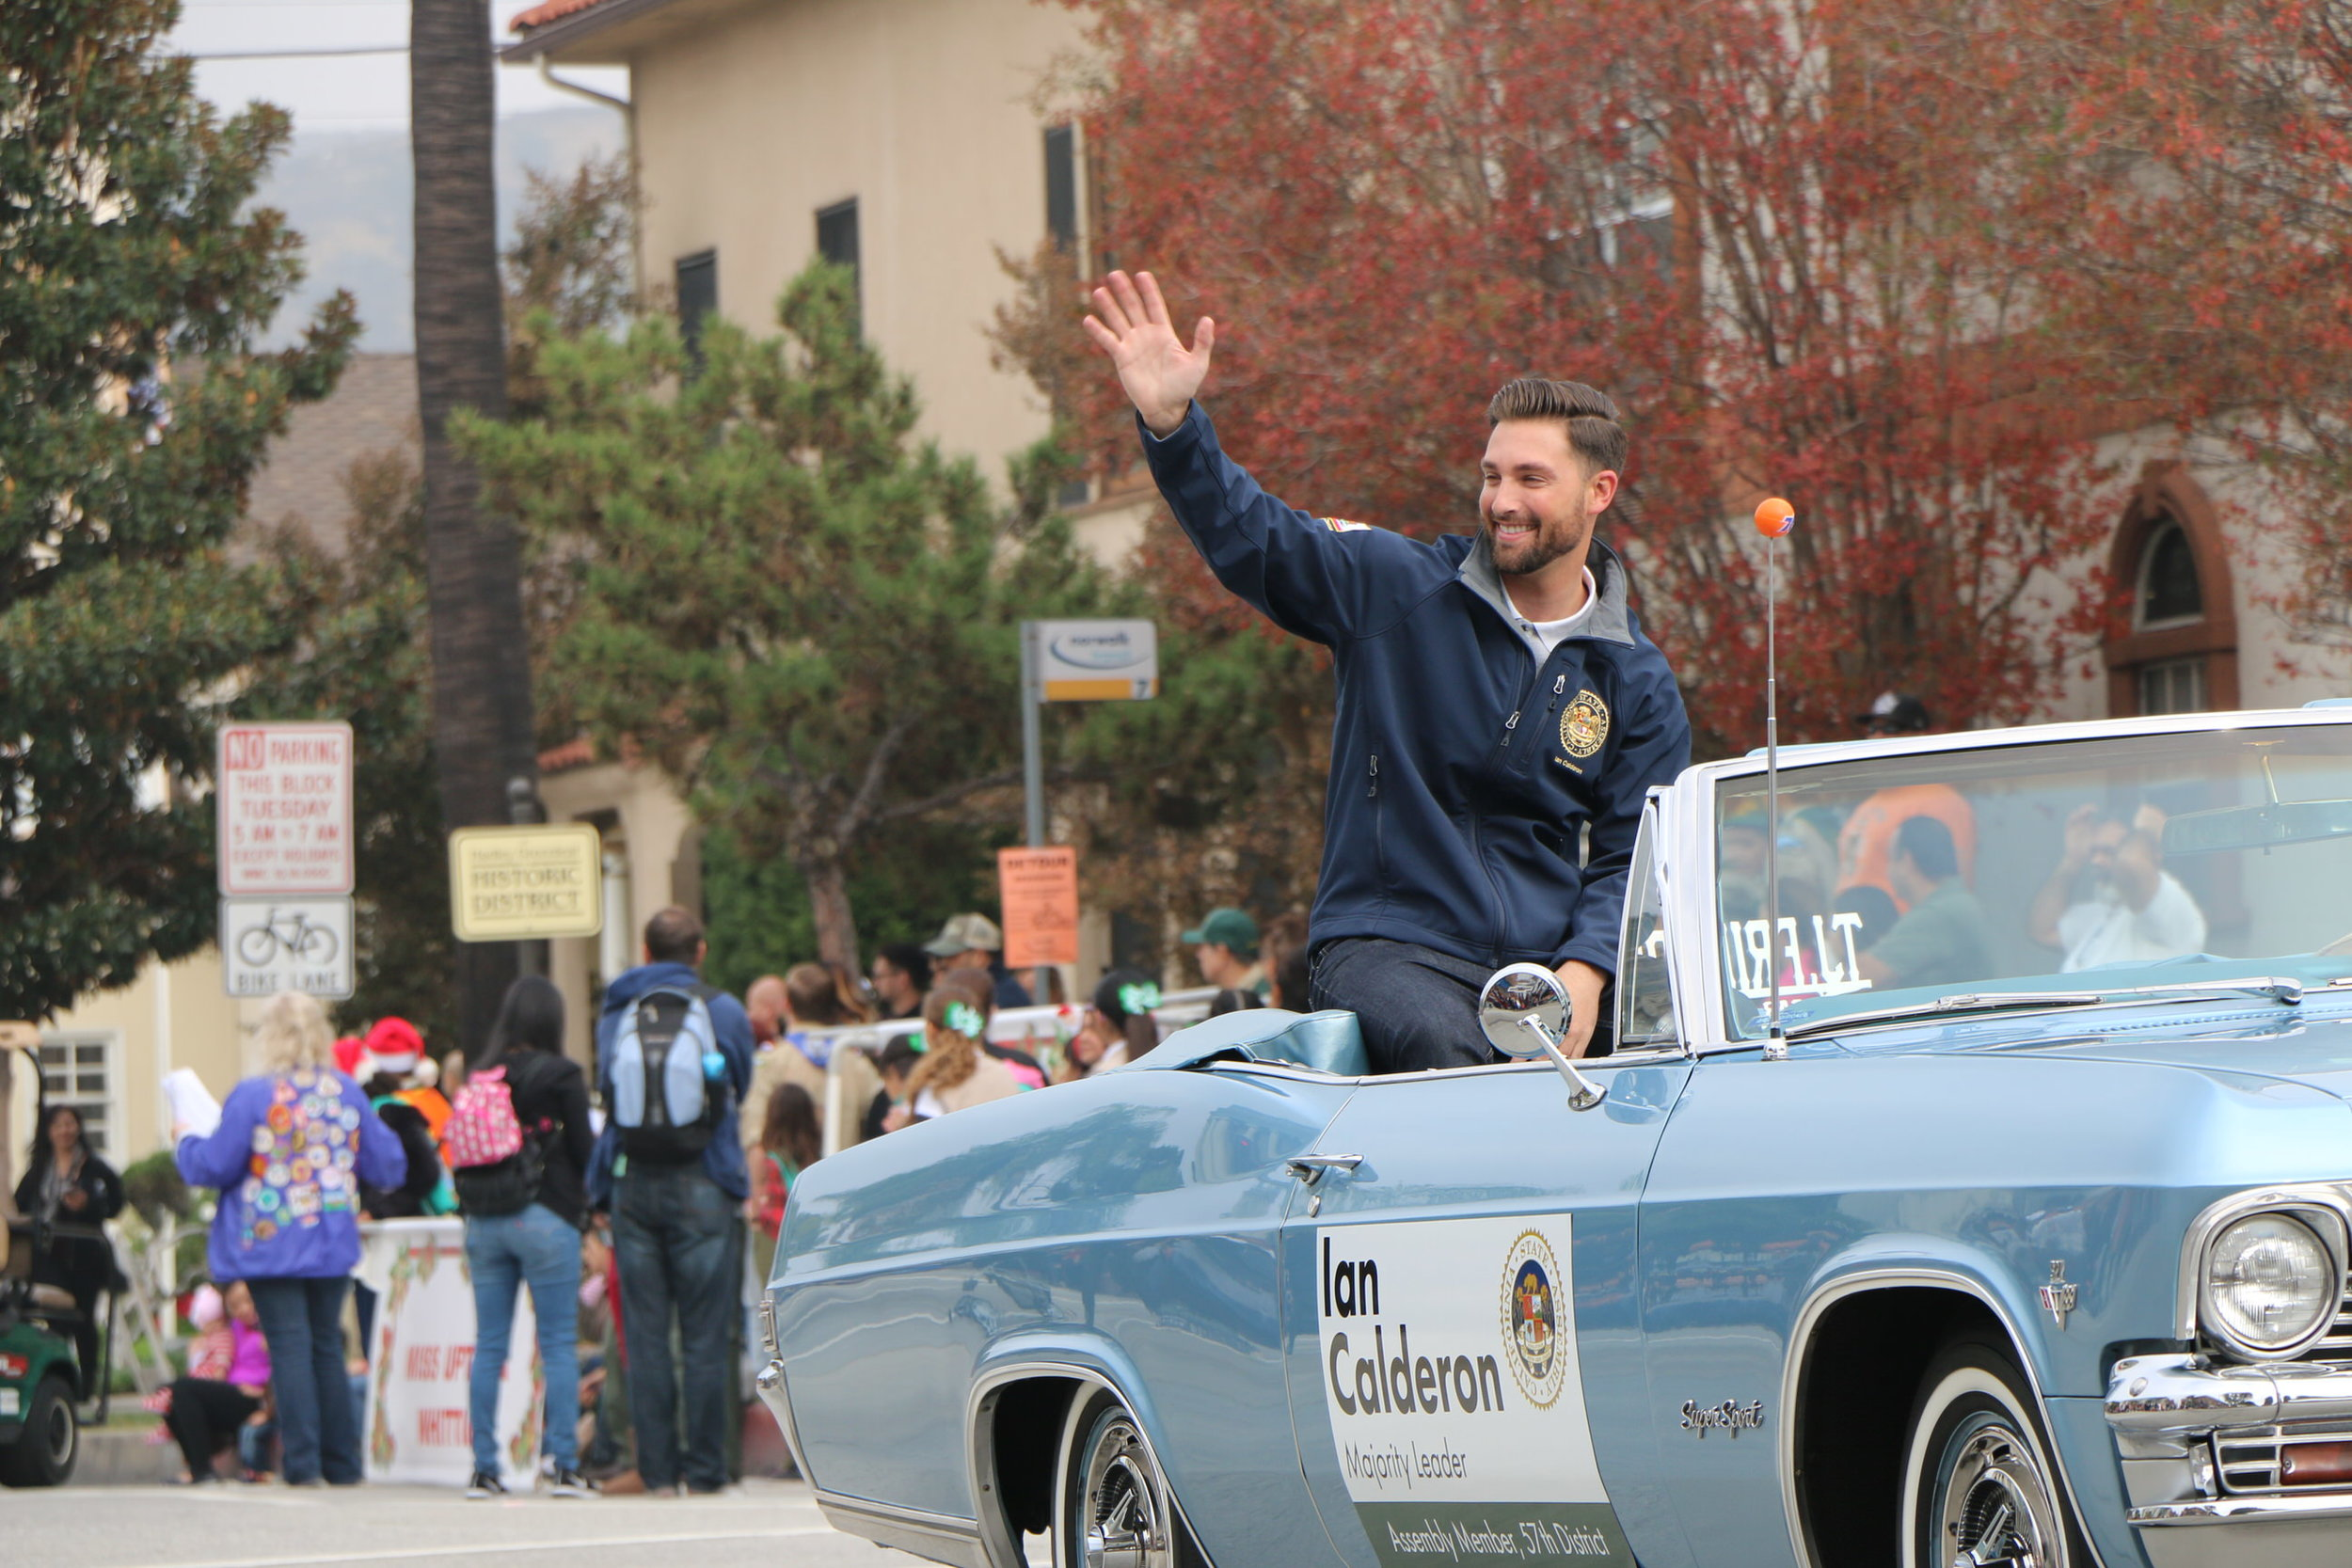 Ian-Uptown-Whittier-Christmas-Parade.jpg